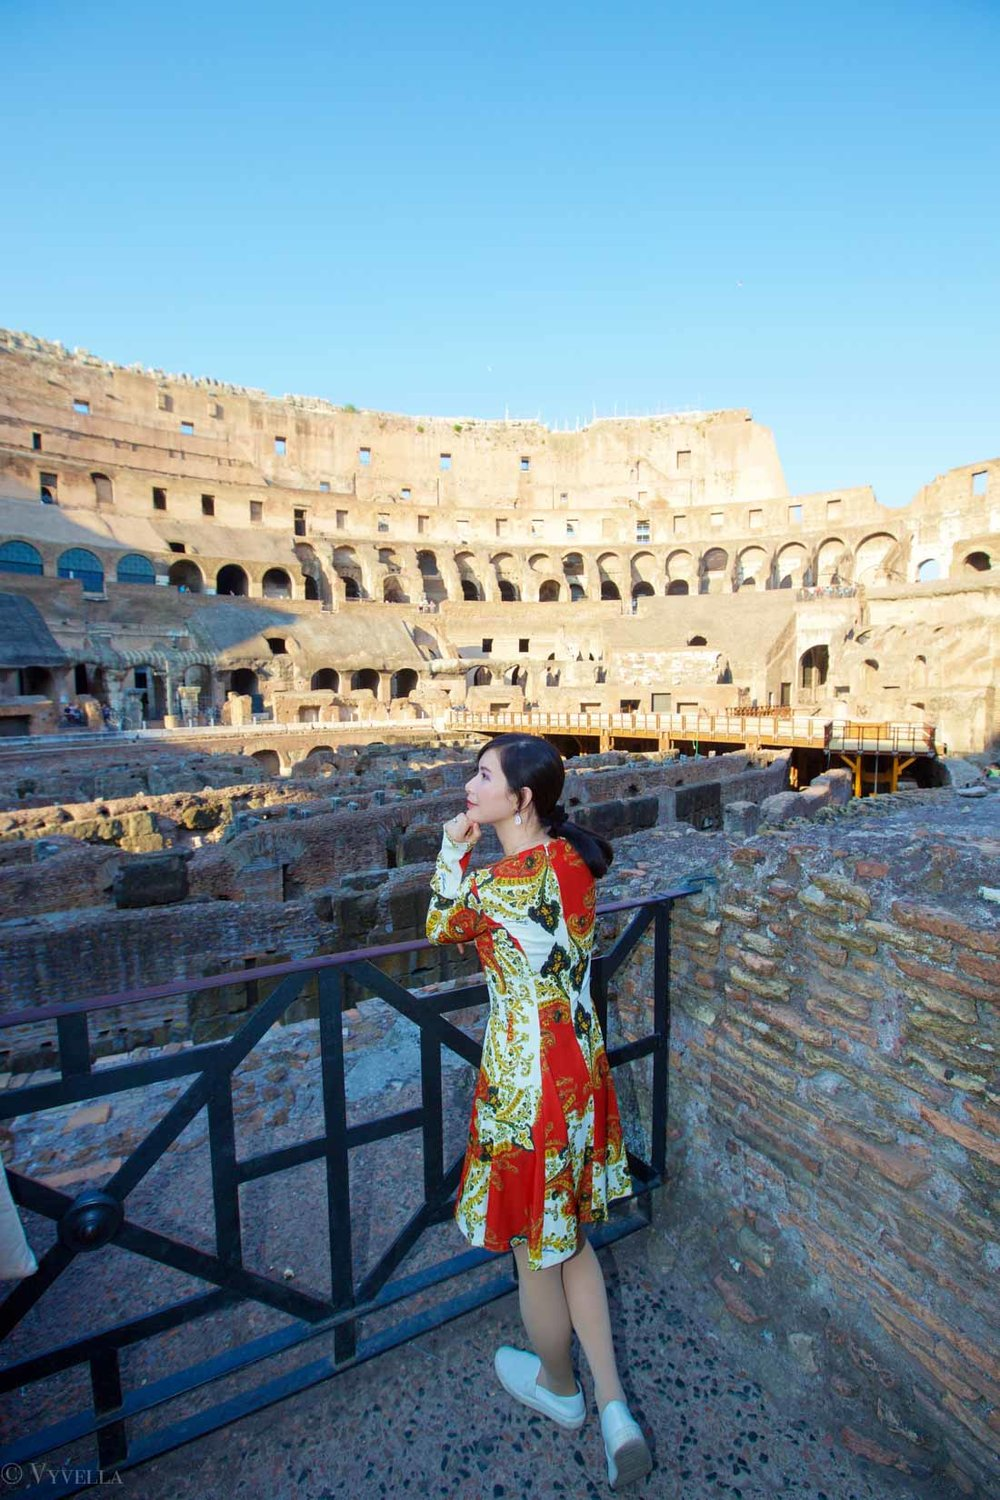 travel_a-look-inside-the-colosseum_05.jpg